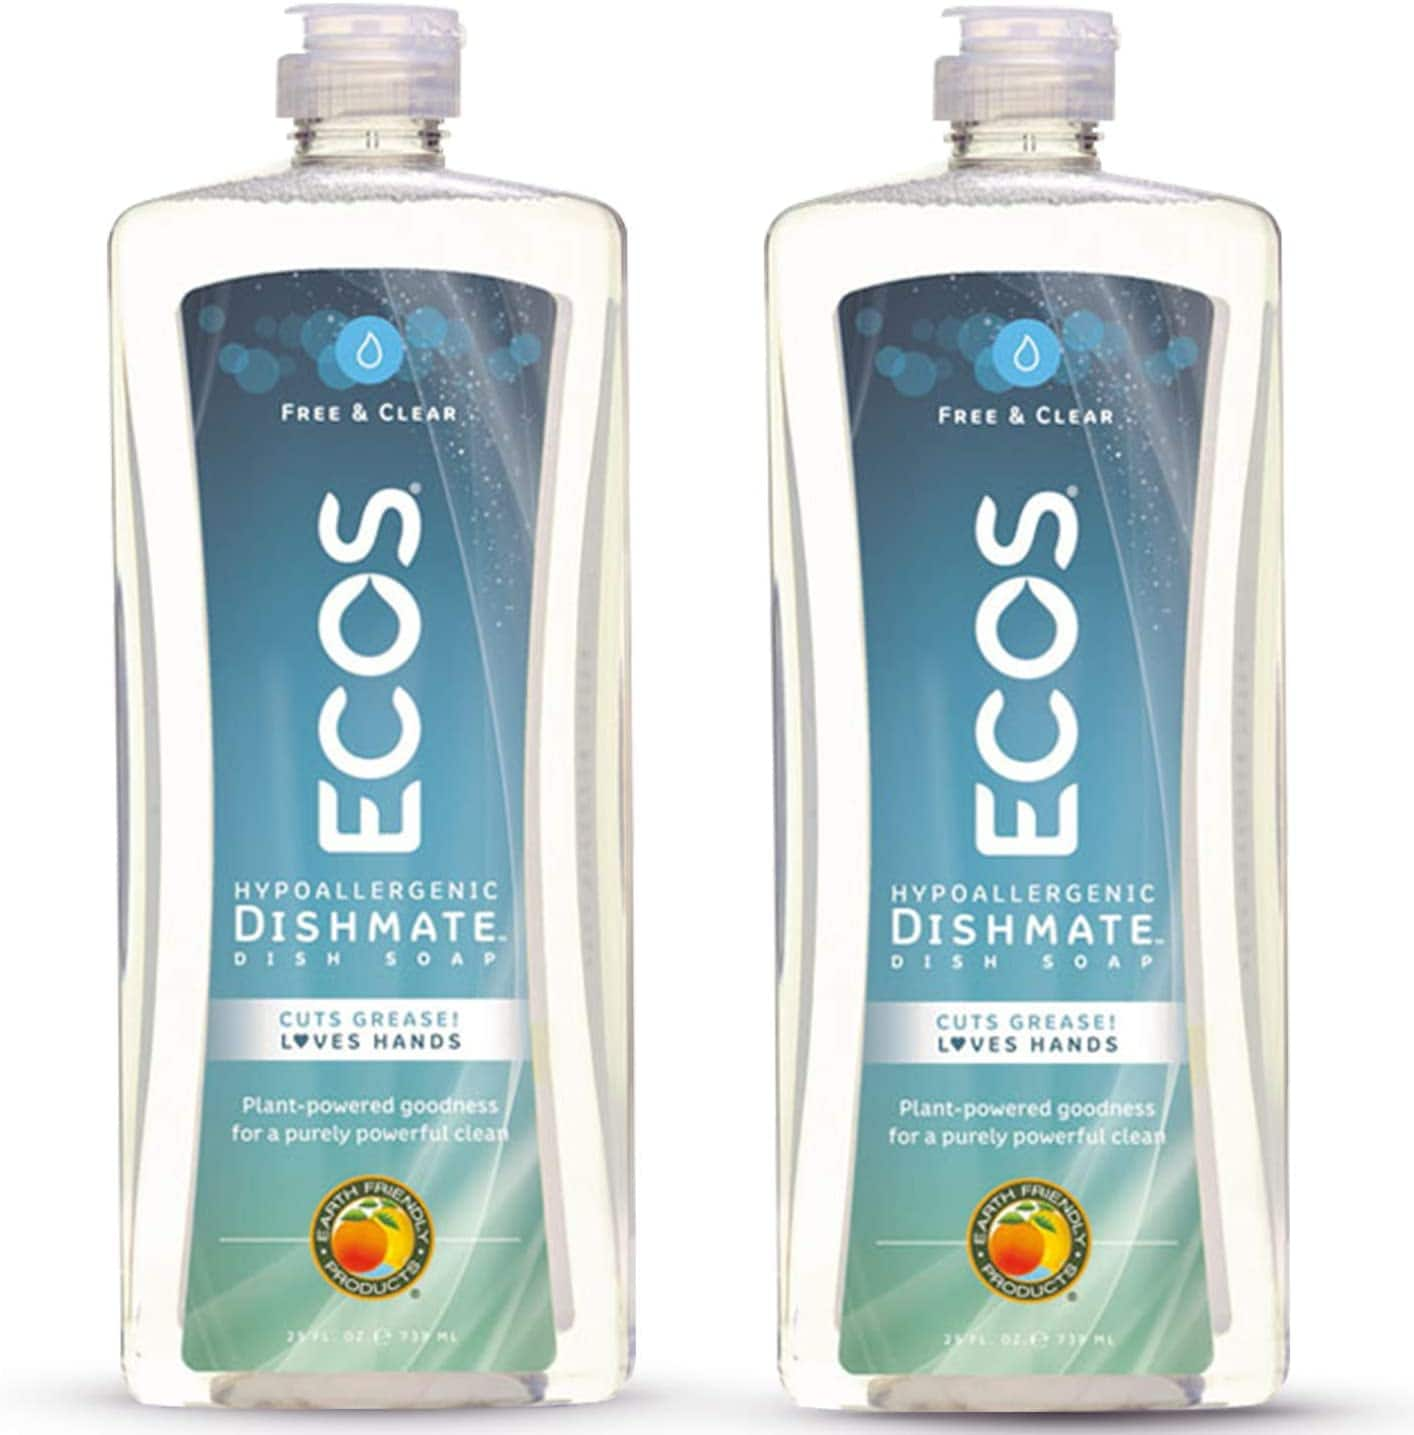 Earth Friendly Products ECOS Dishmate Hypoallergenic Dish Soap, Free & Clear, 25 oz Bottle (Pack of 2) $4.76